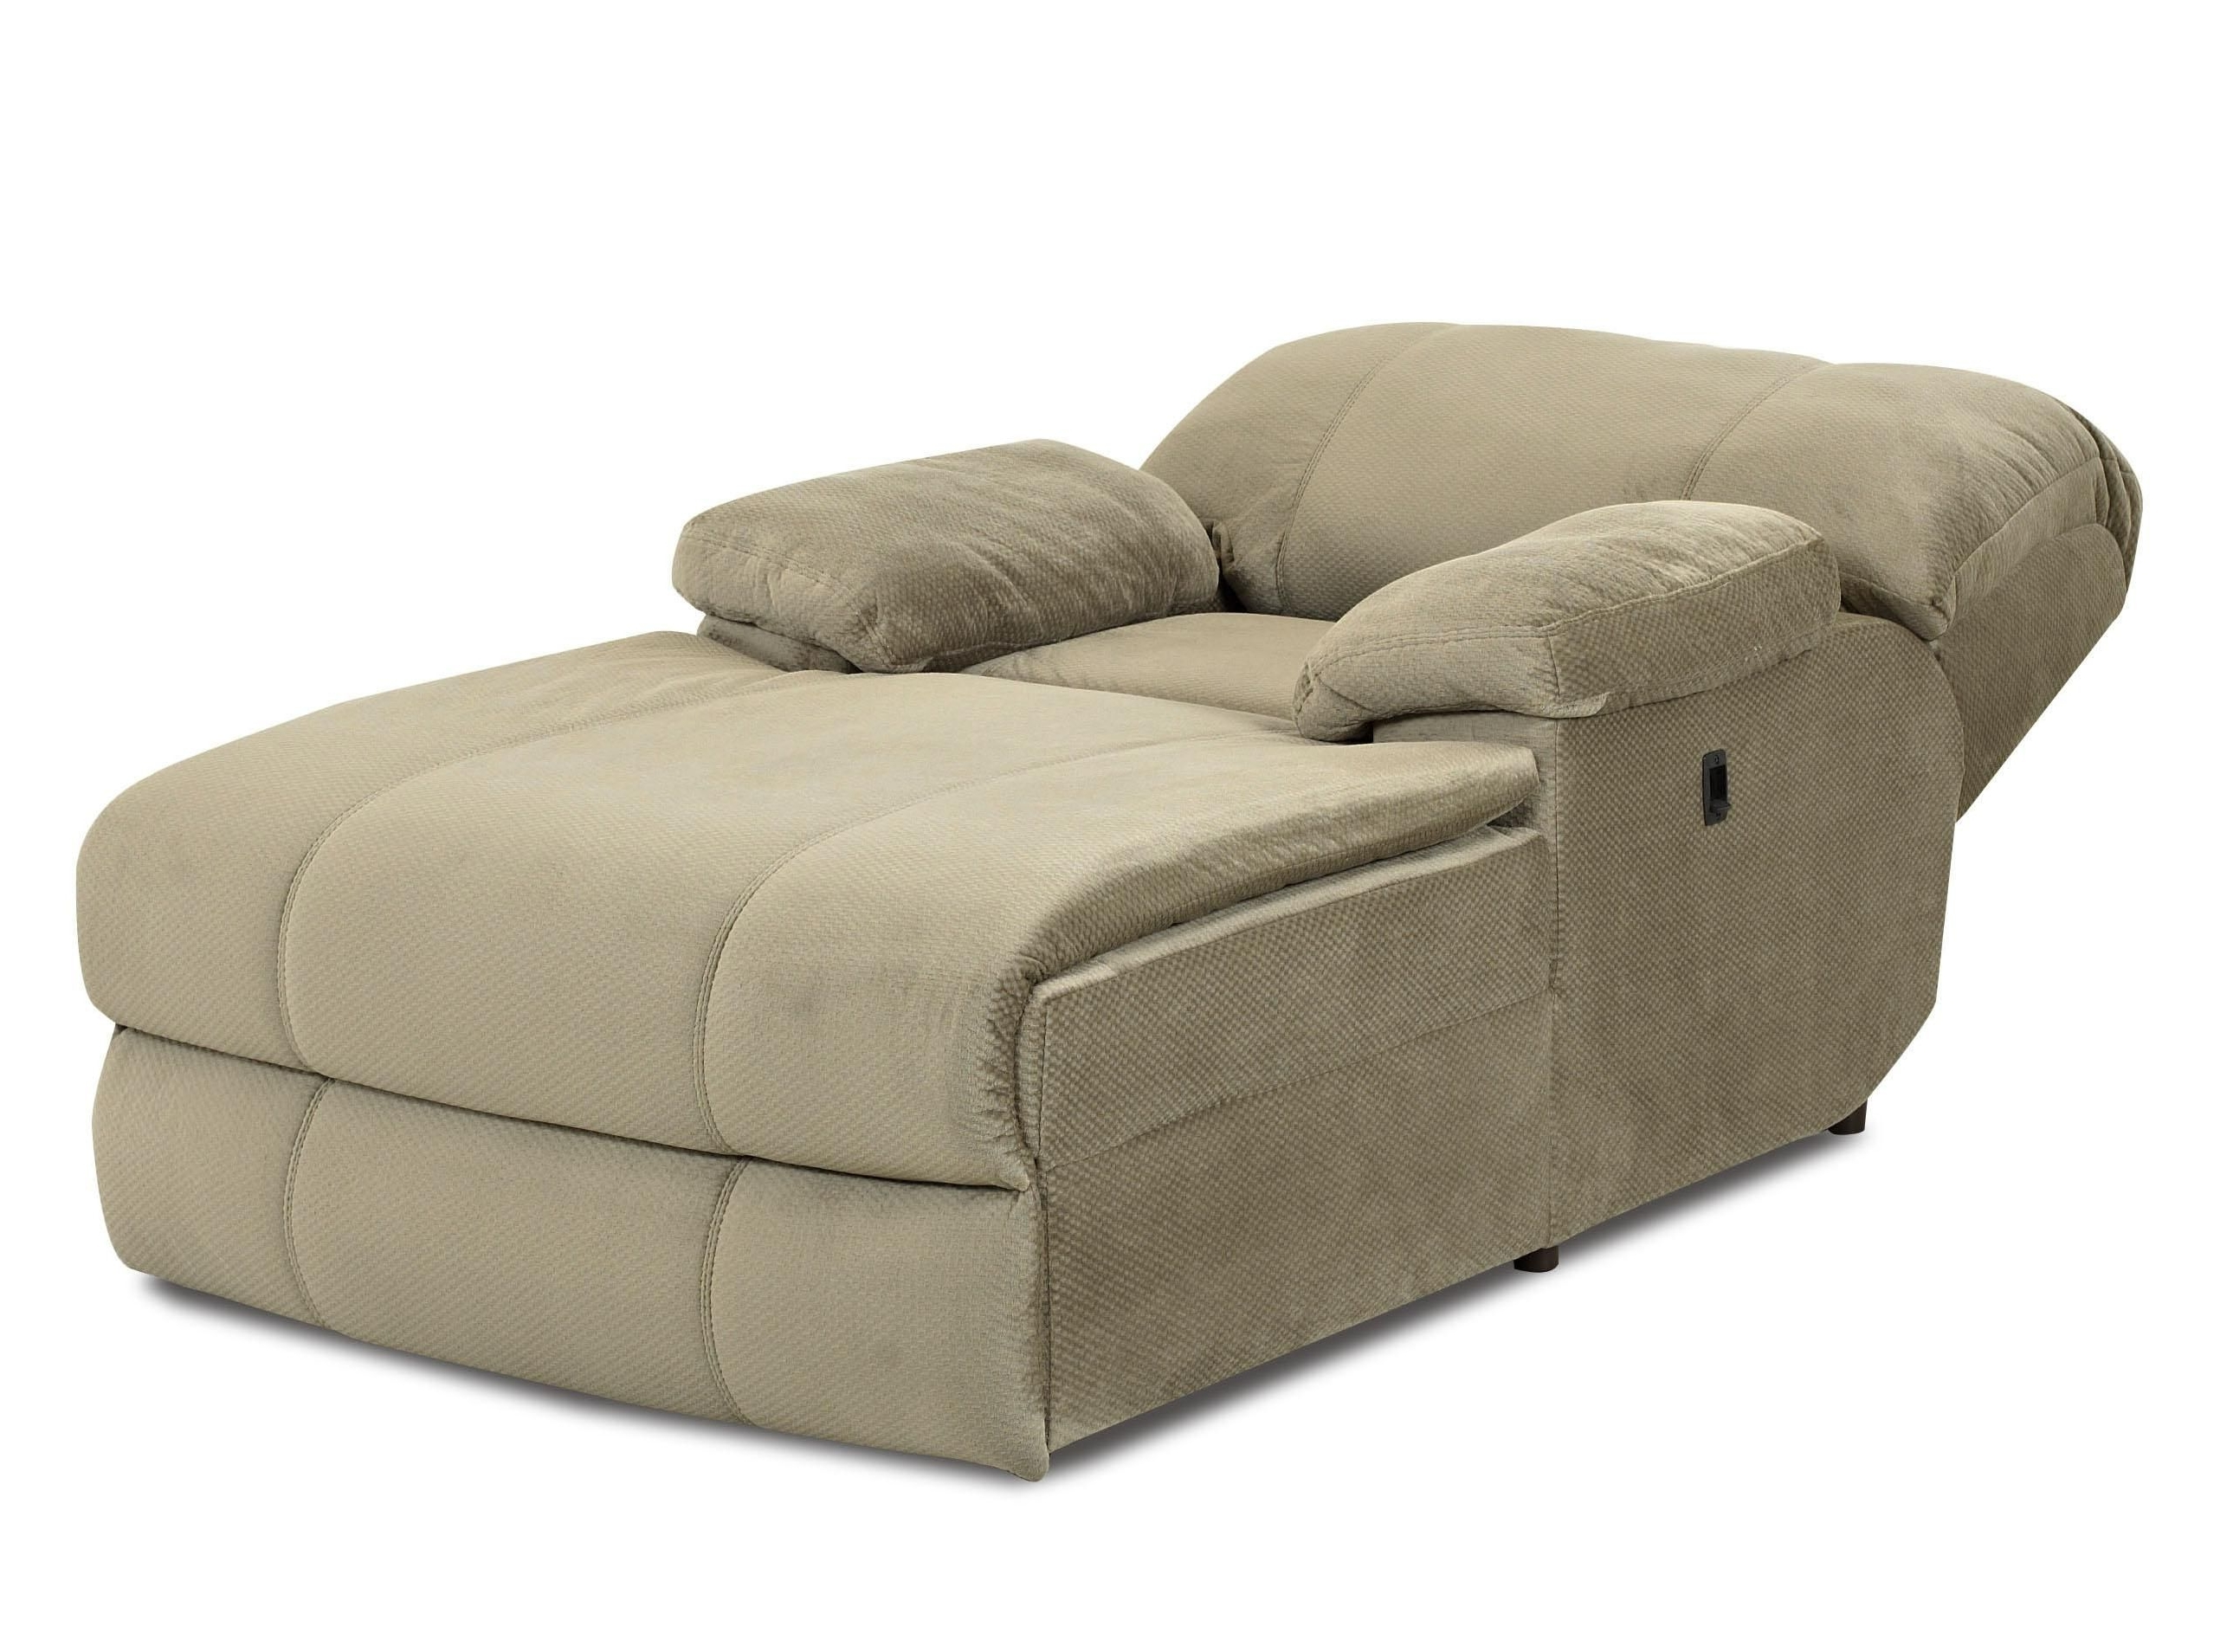 Kensington Reclining Chaise Throughout Jackpot Reclining Chaises (Gallery 9 of 15)